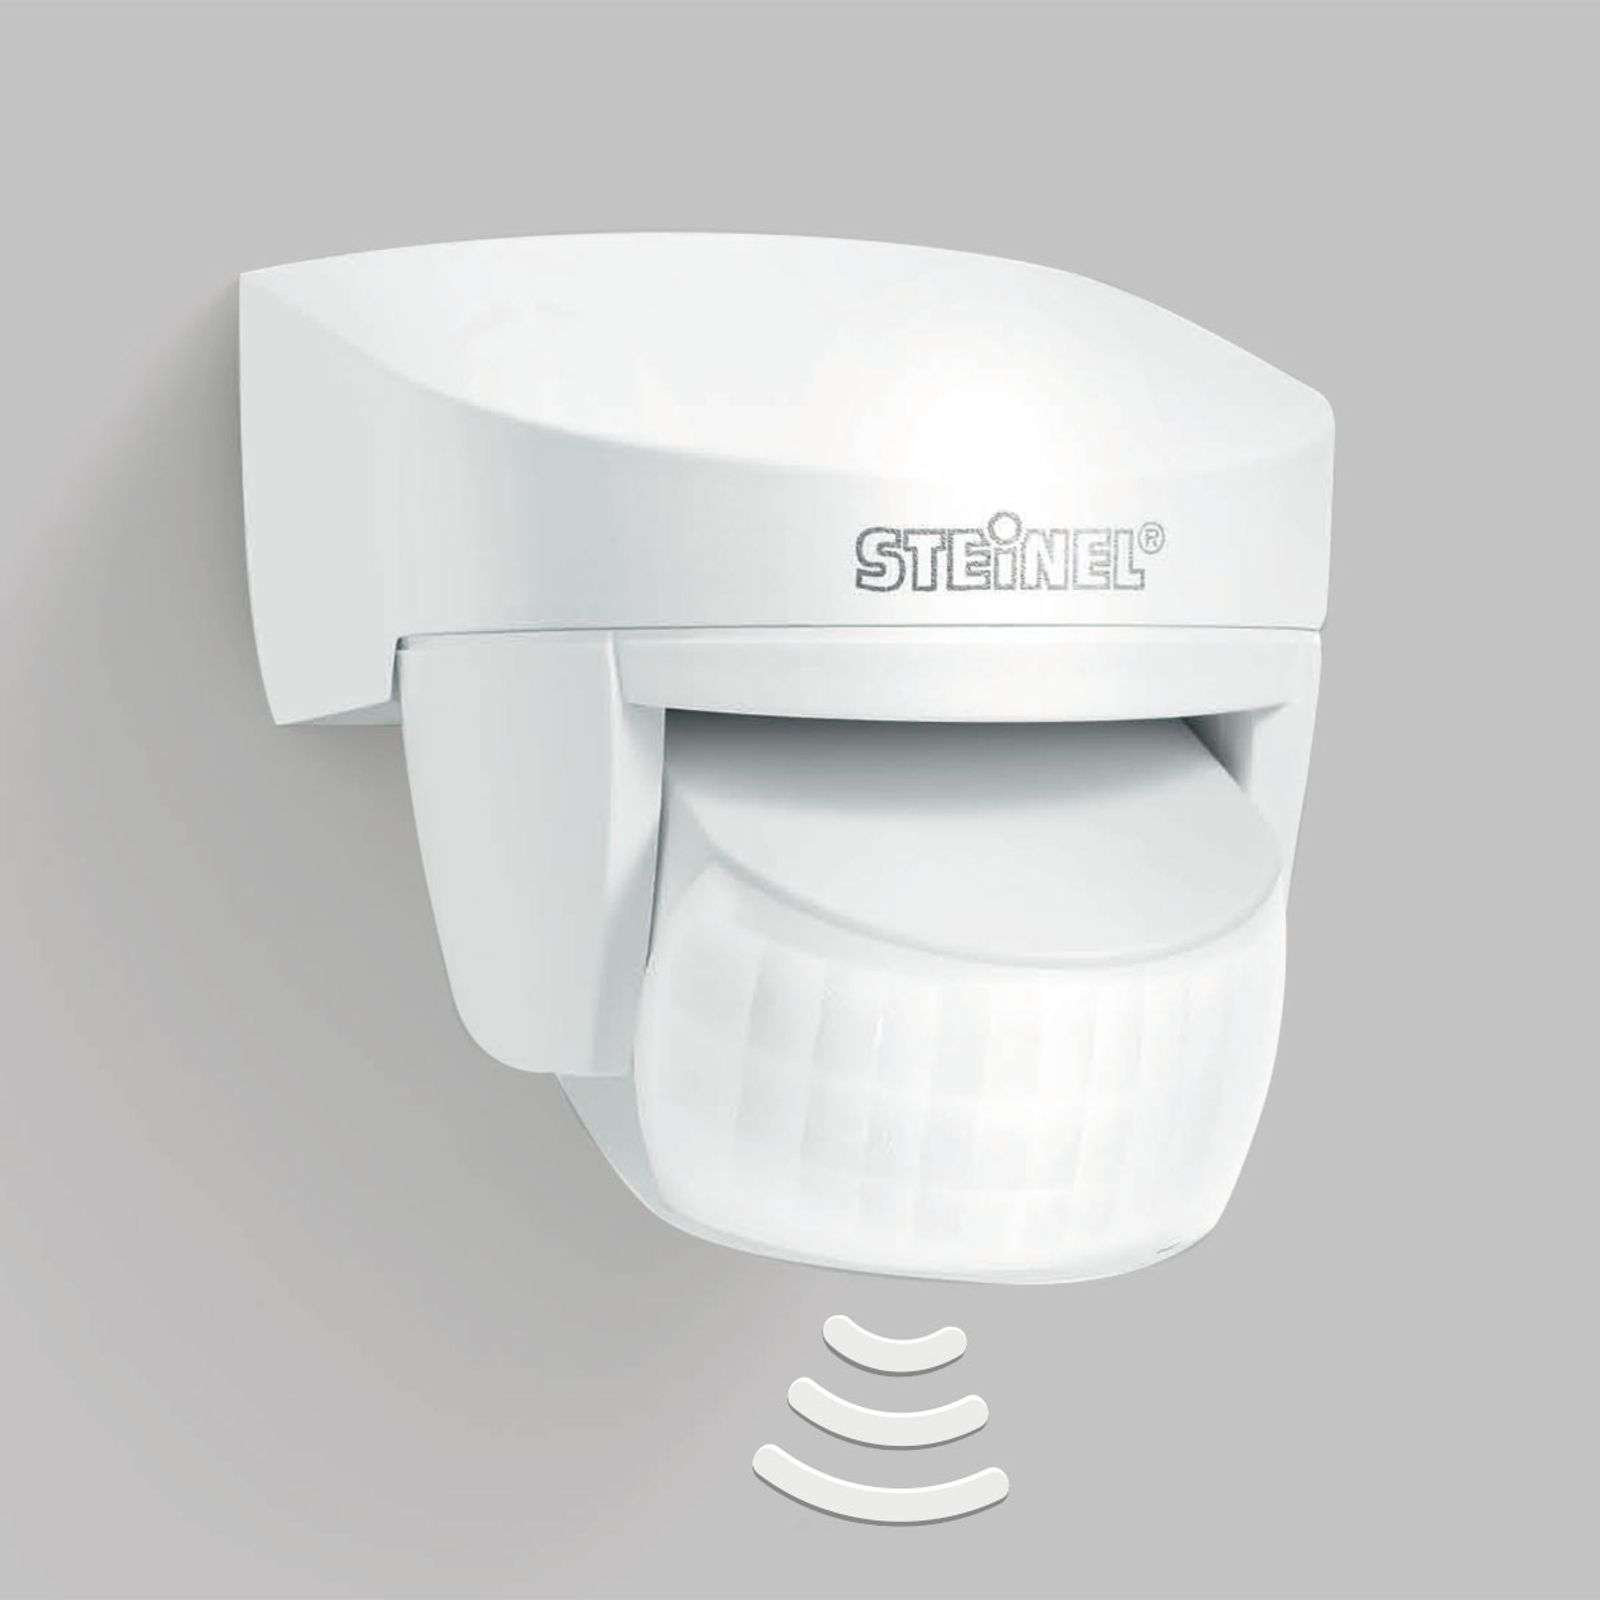 STEINEL IS 140-2 Smart Friends Sensor blanco